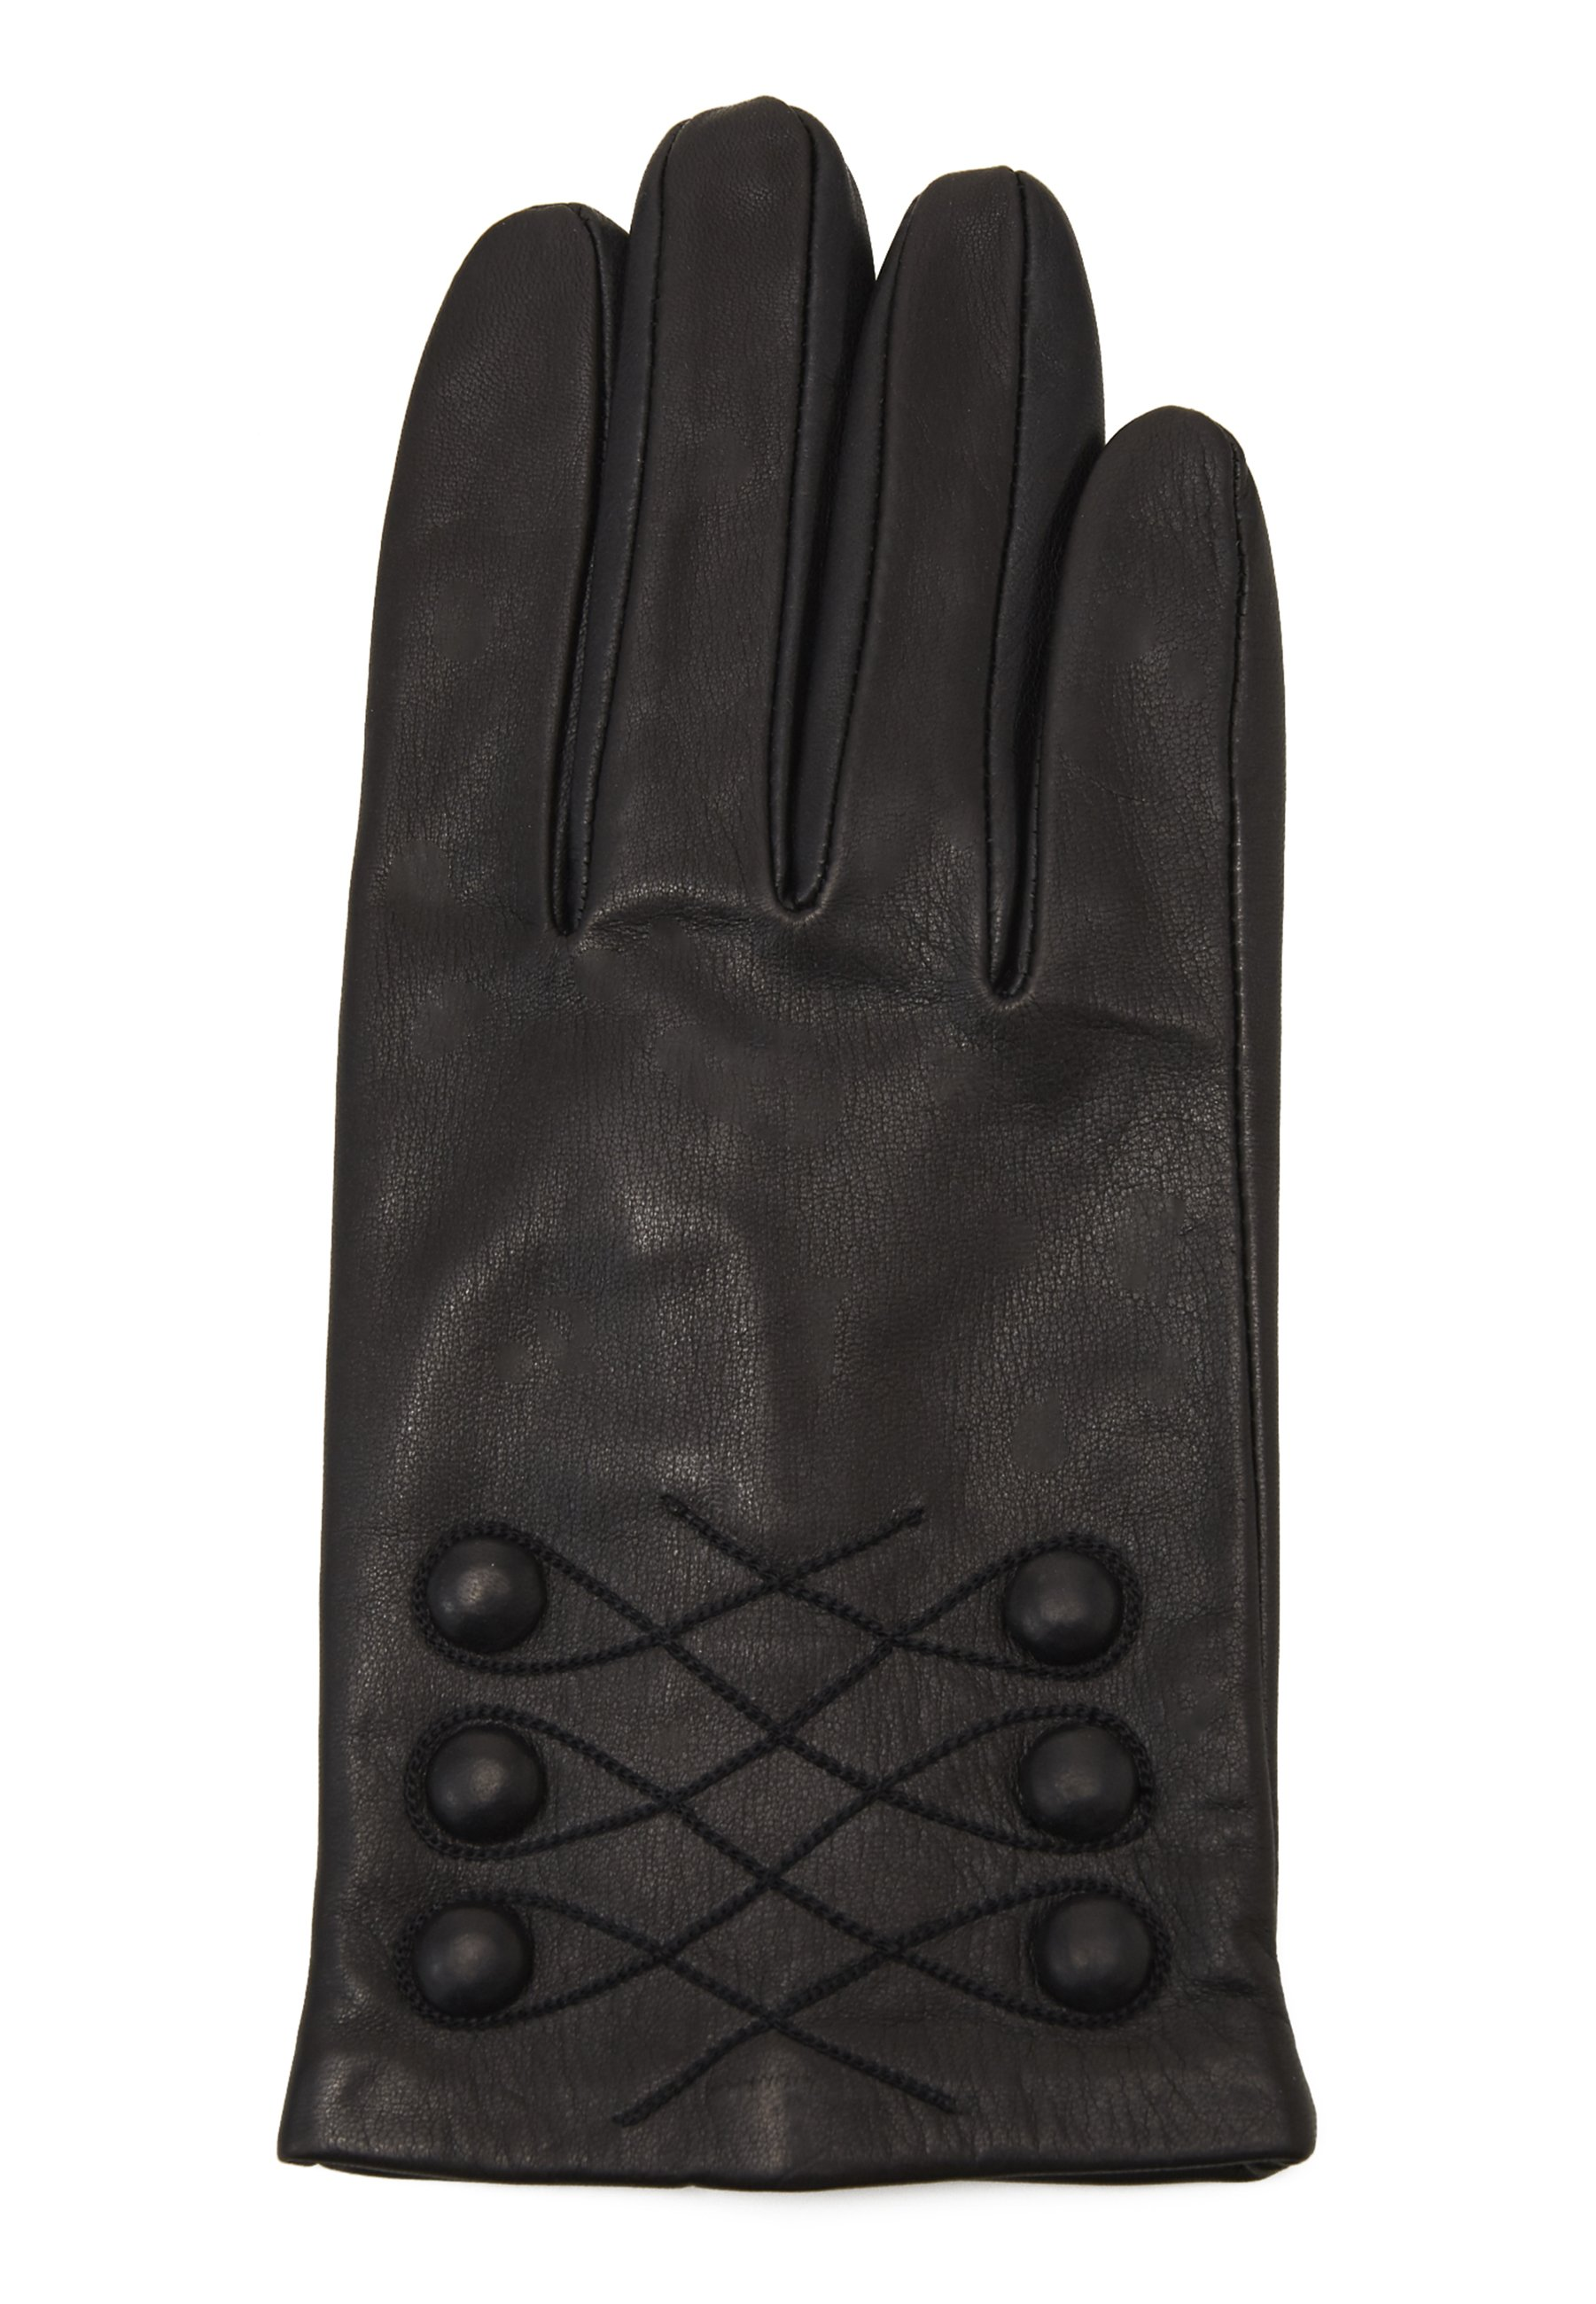 Otto Kessler Gants - dark brown